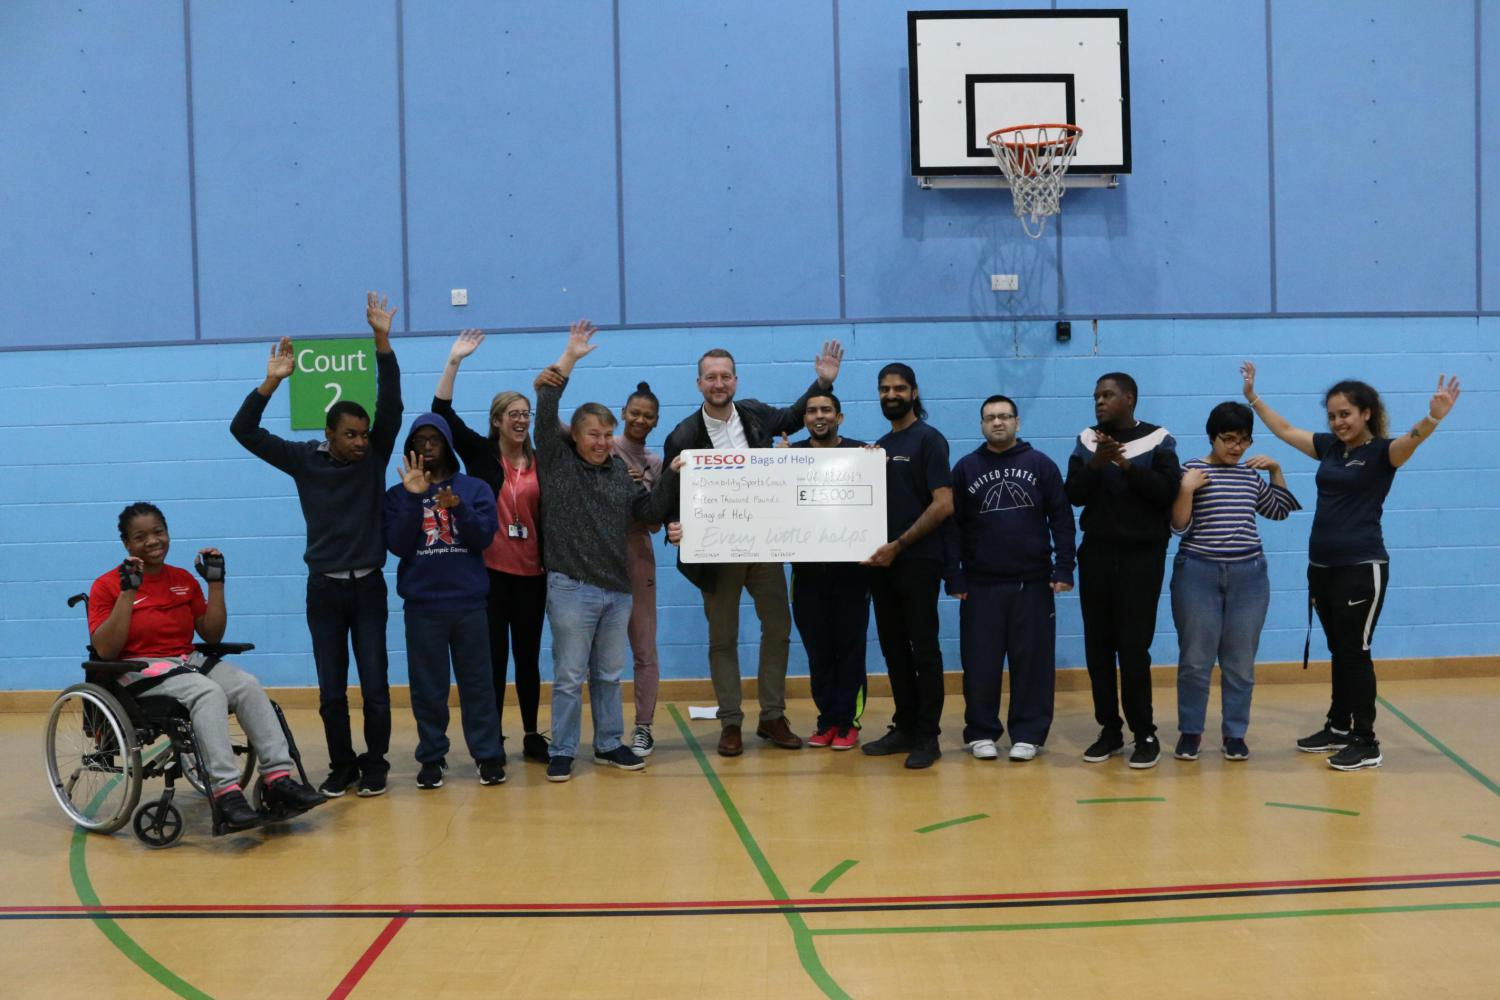 Tesco Bags of Help Store Vote - Disability Sports Coach - Centenary